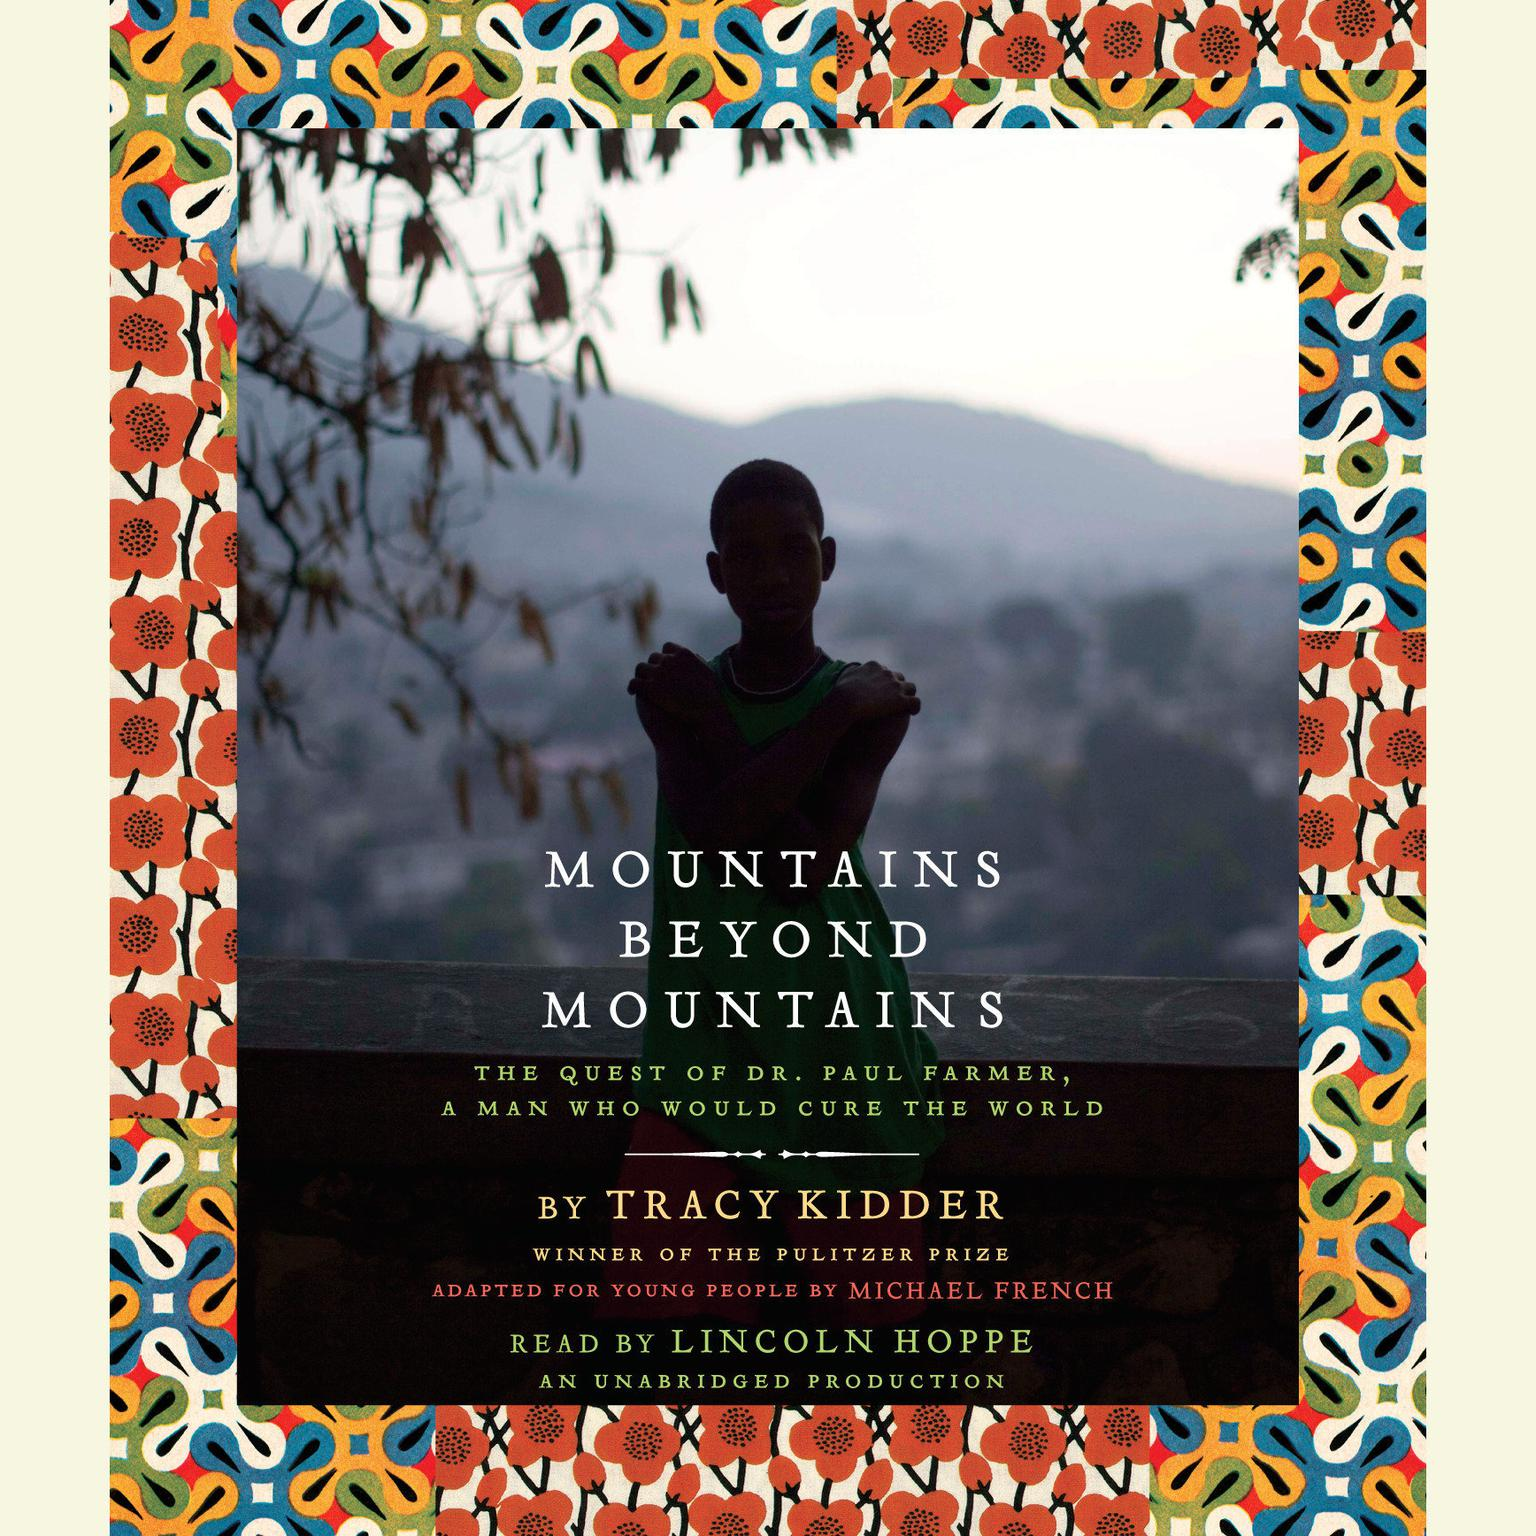 Printable Mountains Beyond Mountains (Adapted for Young People): The Quest of Dr. Paul Farmer, A Man Who Would Cure the World Audiobook Cover Art